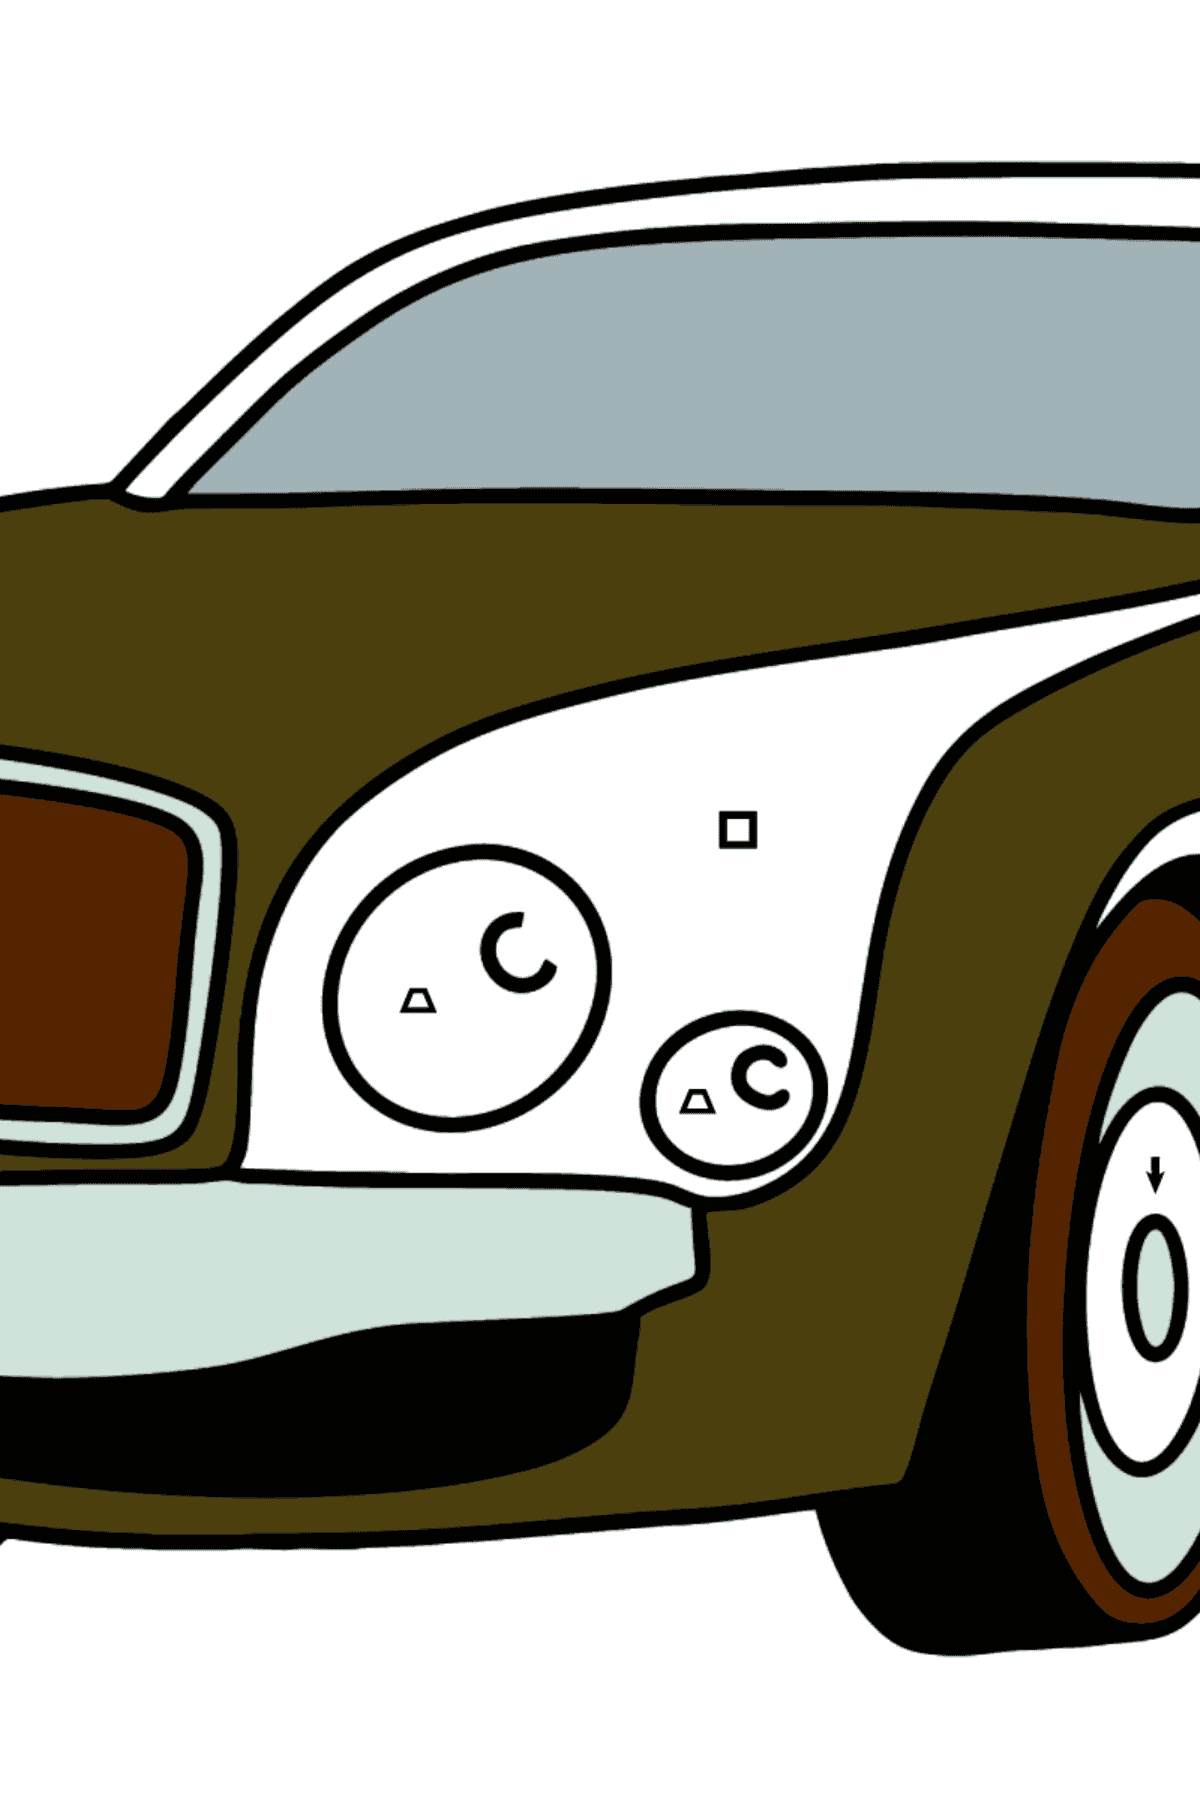 Bentley Car Coloring Page - Coloring by Symbols and Geometric Shapes for Kids